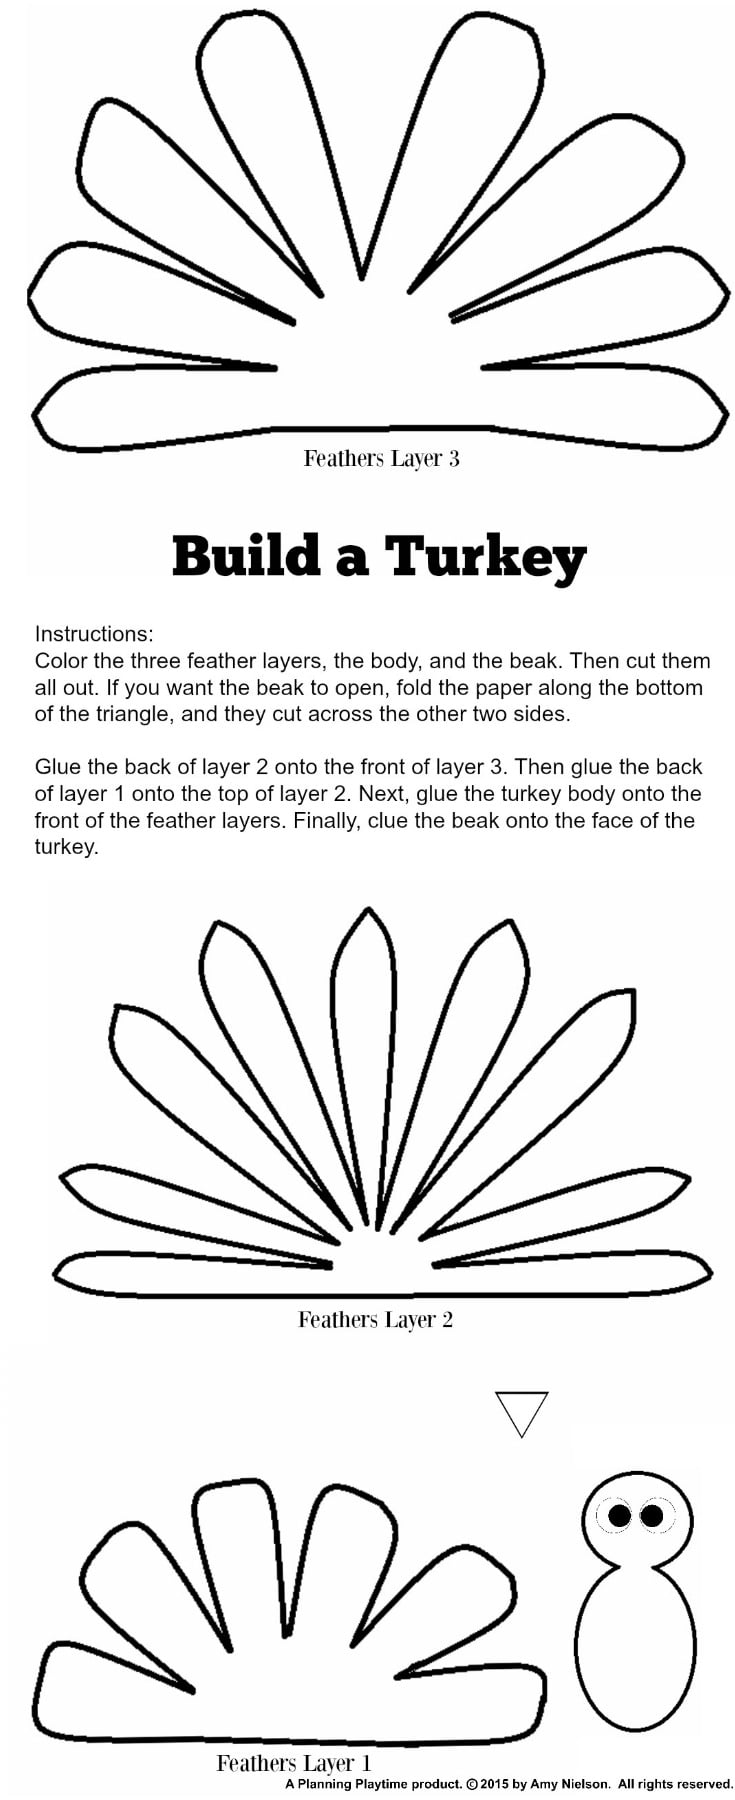 photograph regarding Turkey Cut Out Printable known as Lovely Turkey Craft w/ No cost Printable Template - Designing Playtime